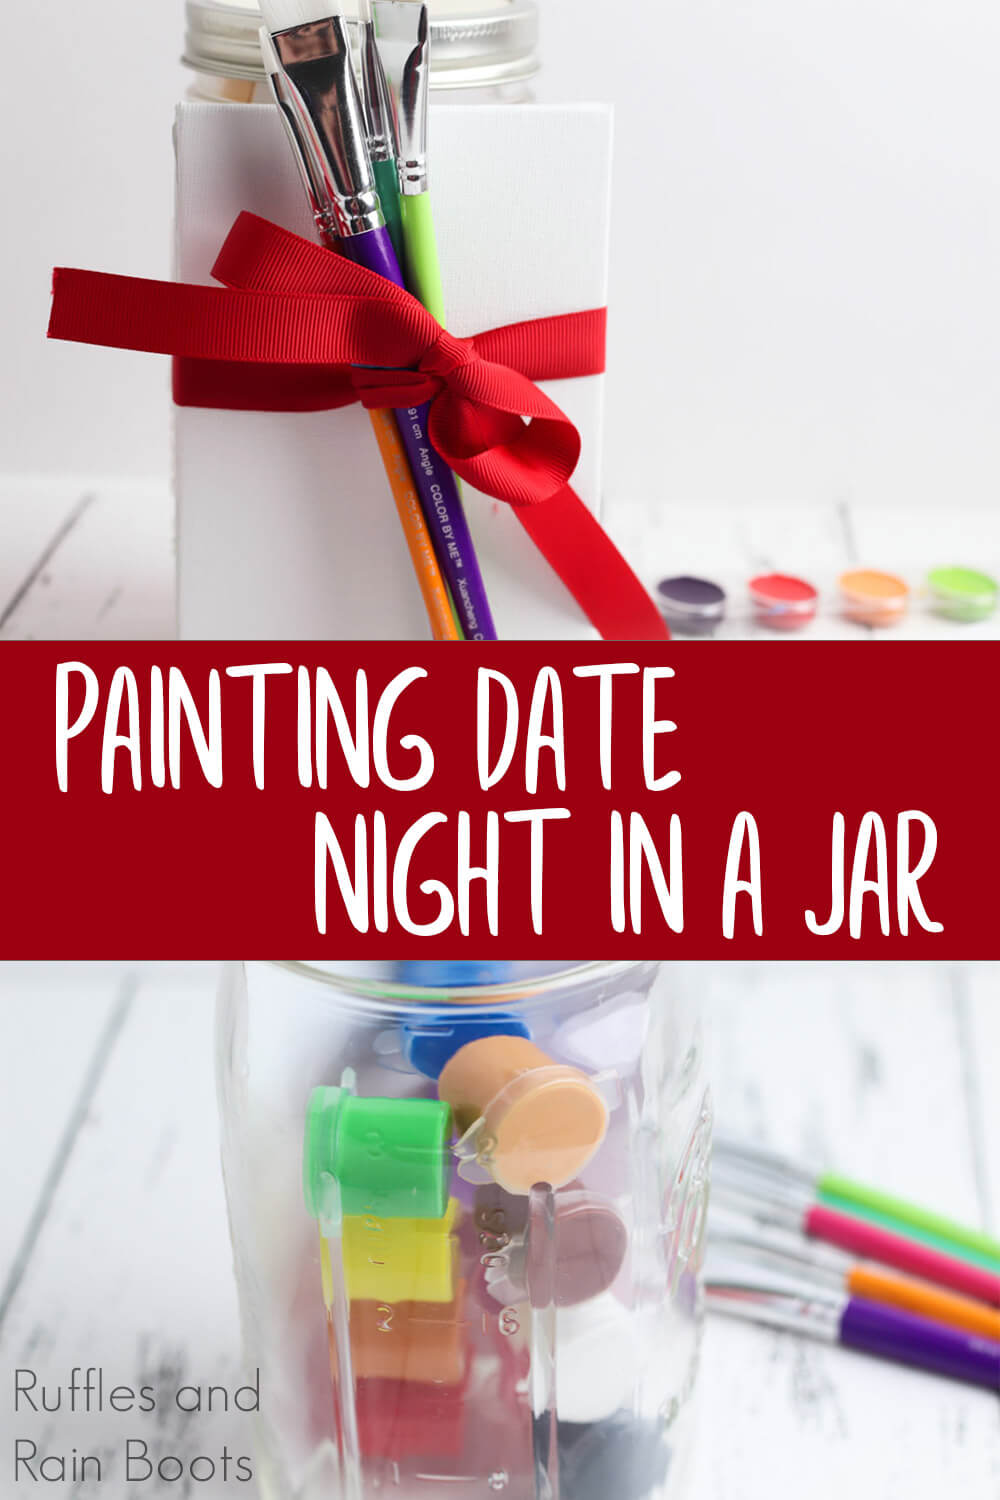 photo collage of date night in a jar for painting night with text which reads painting date night in a jar